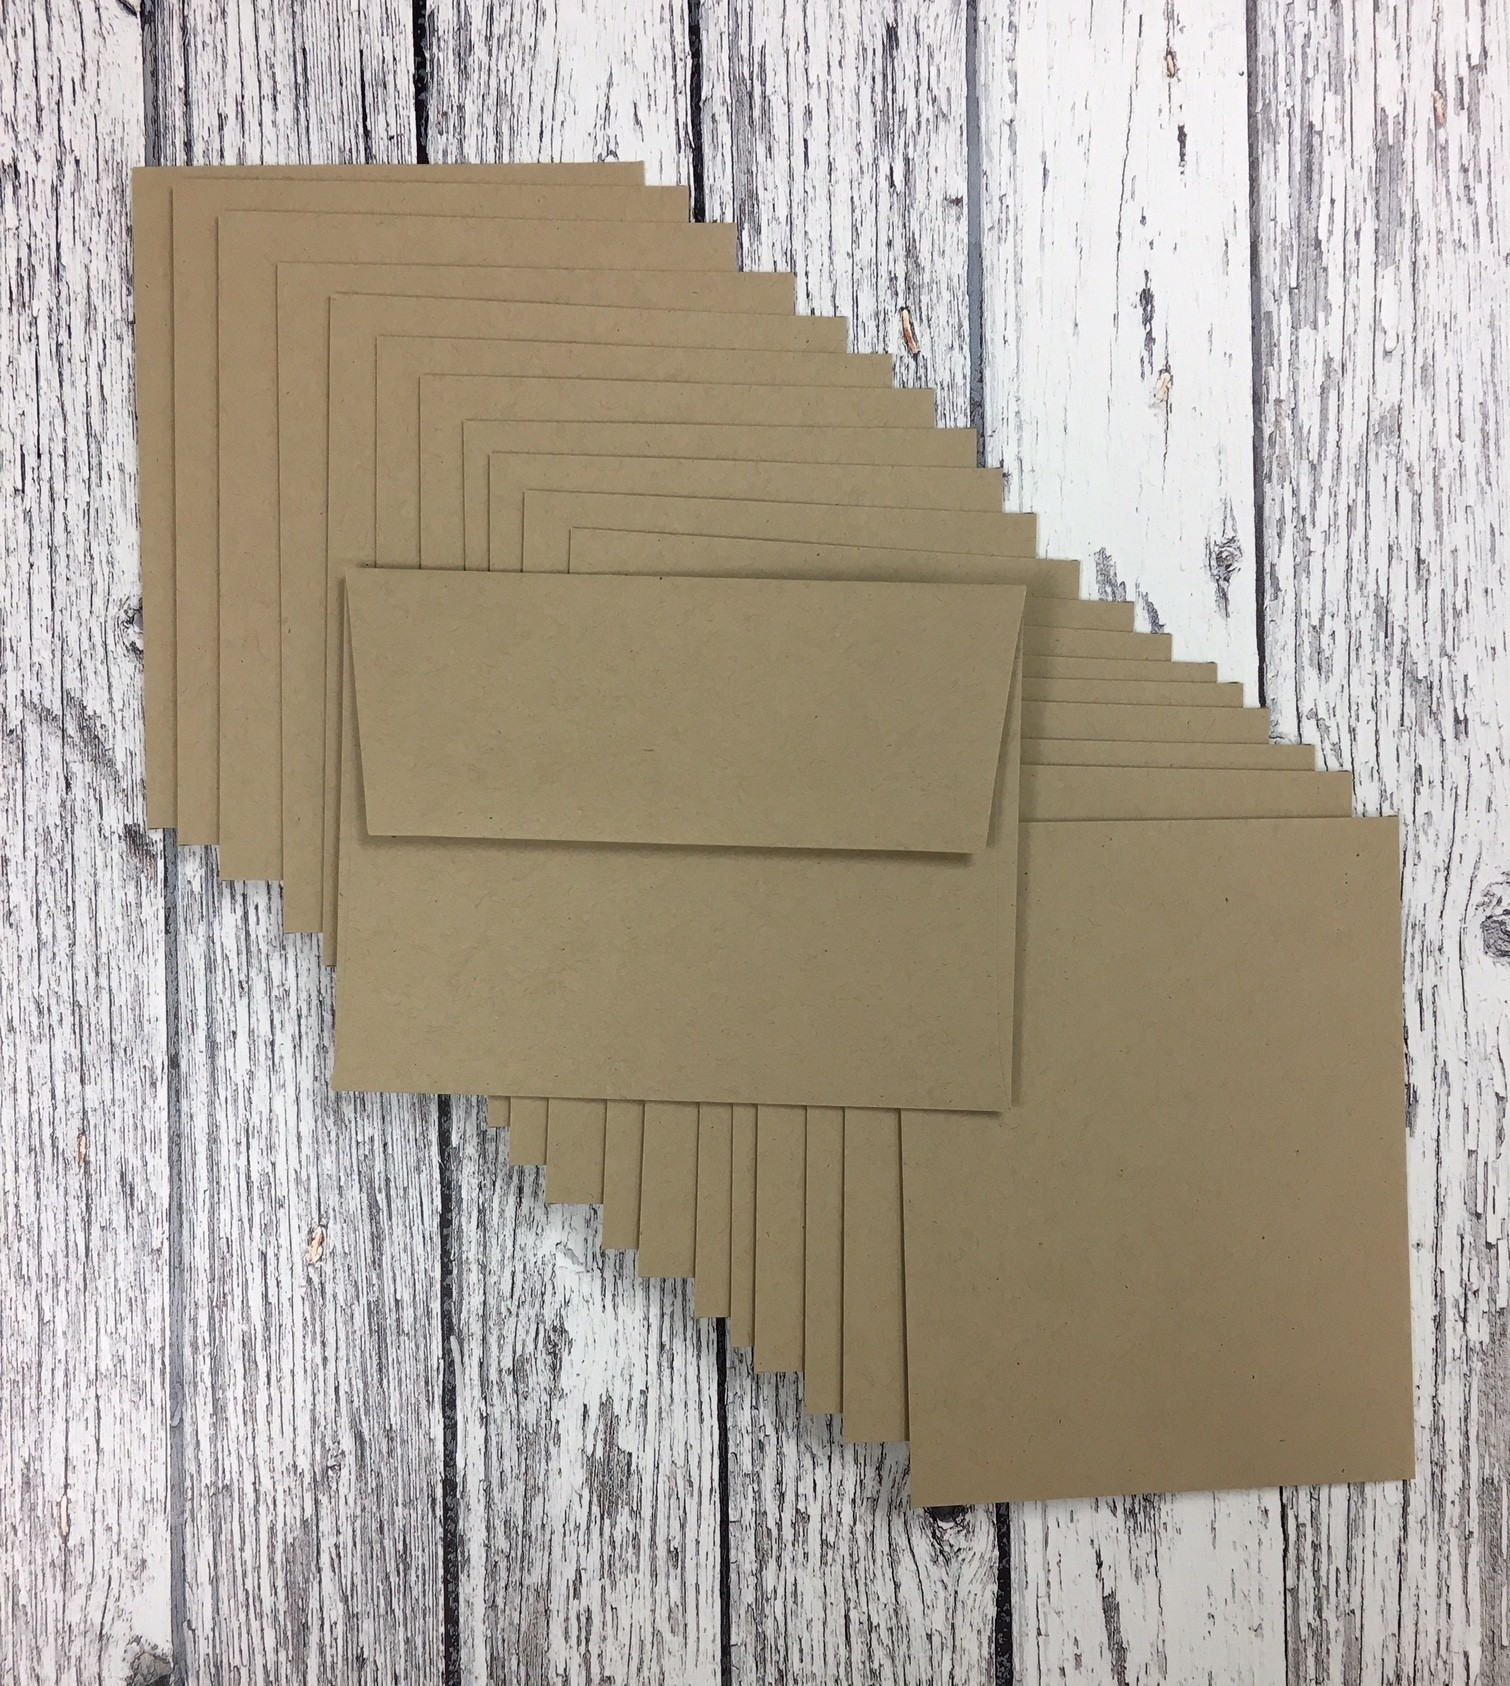 Taylored Expressions - A2 Envelopes - Toffee  - pack of 10